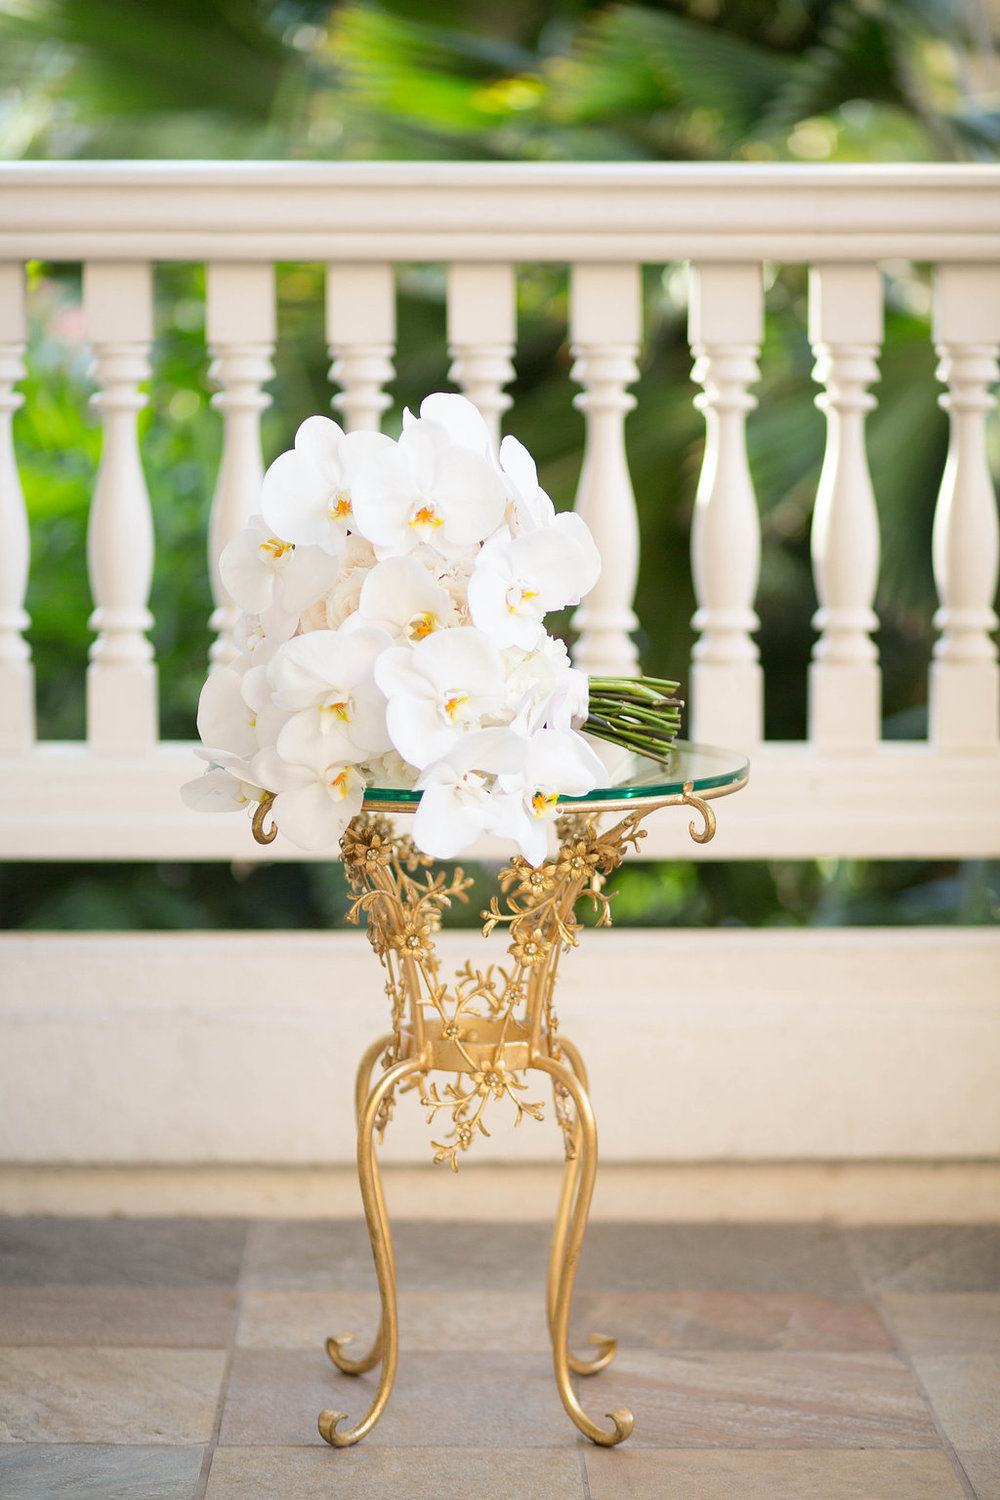 dramatic white orchid bouquet by Passion Roots / Ashley Goodwin Photography